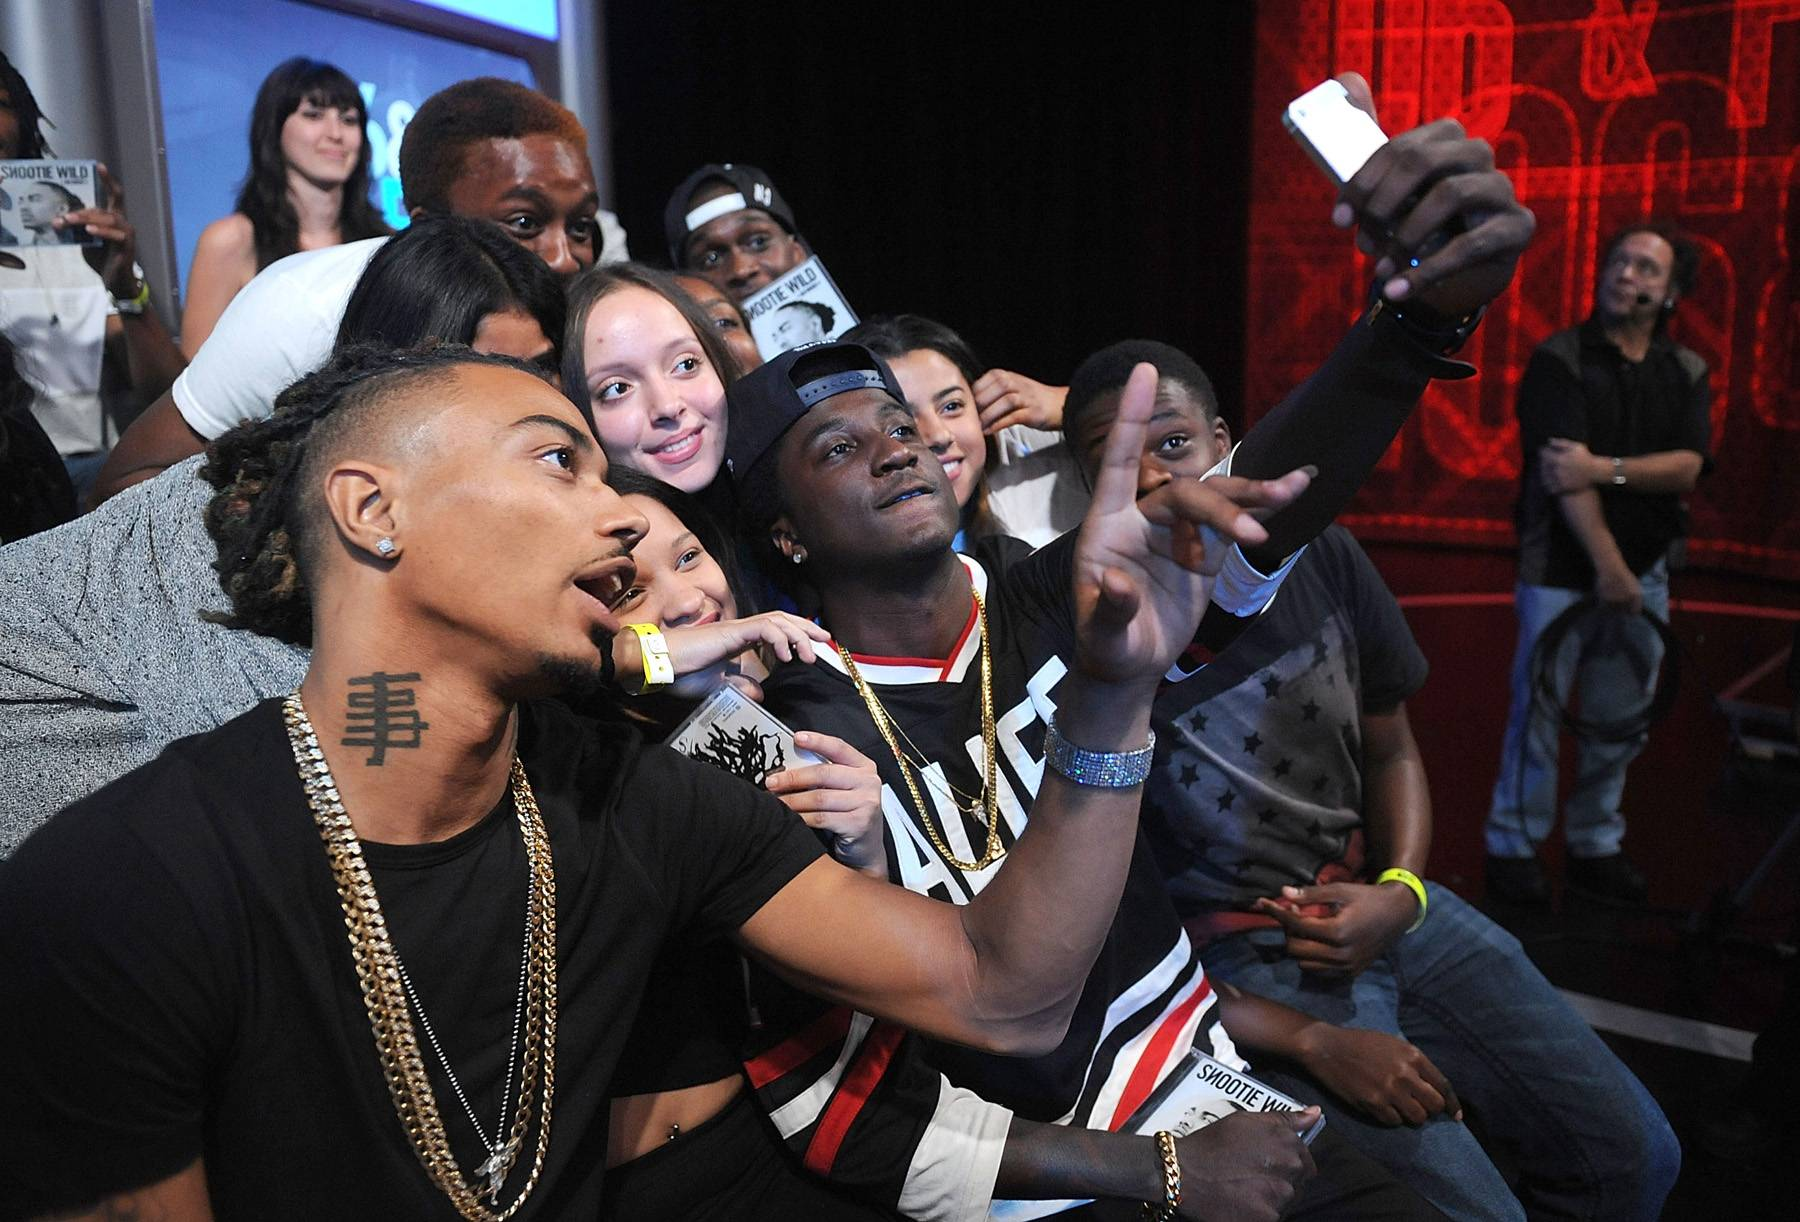 Rappers Take Selfies Too! - (Photo: Brad Barket/BET/Getty Images)